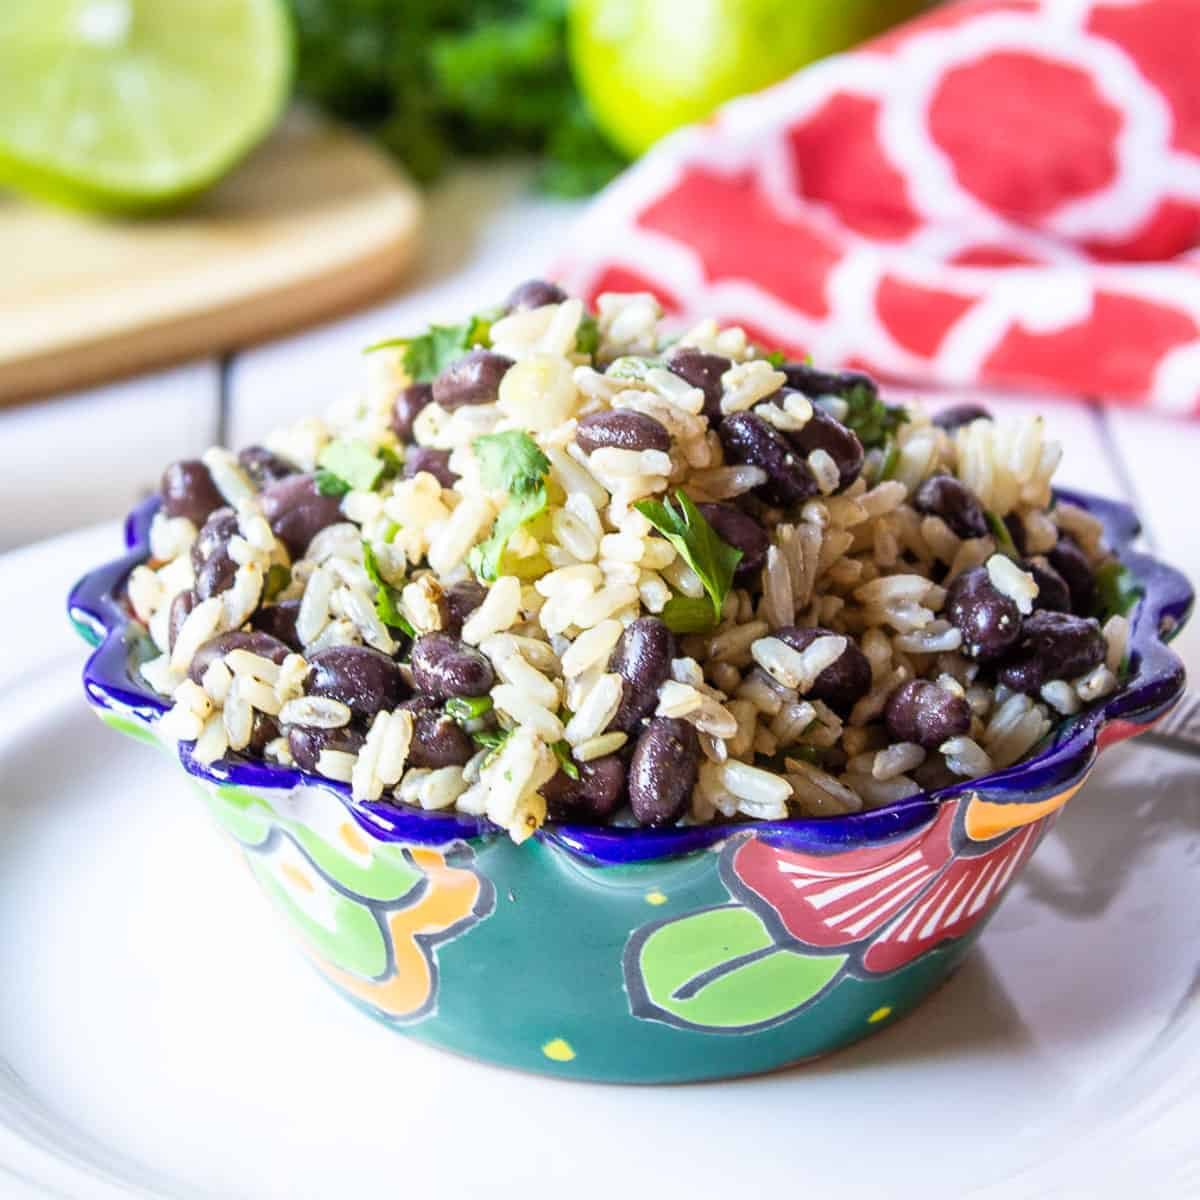 A colorful bowl filled with brown rice and black beans topped with fresh cilantro.